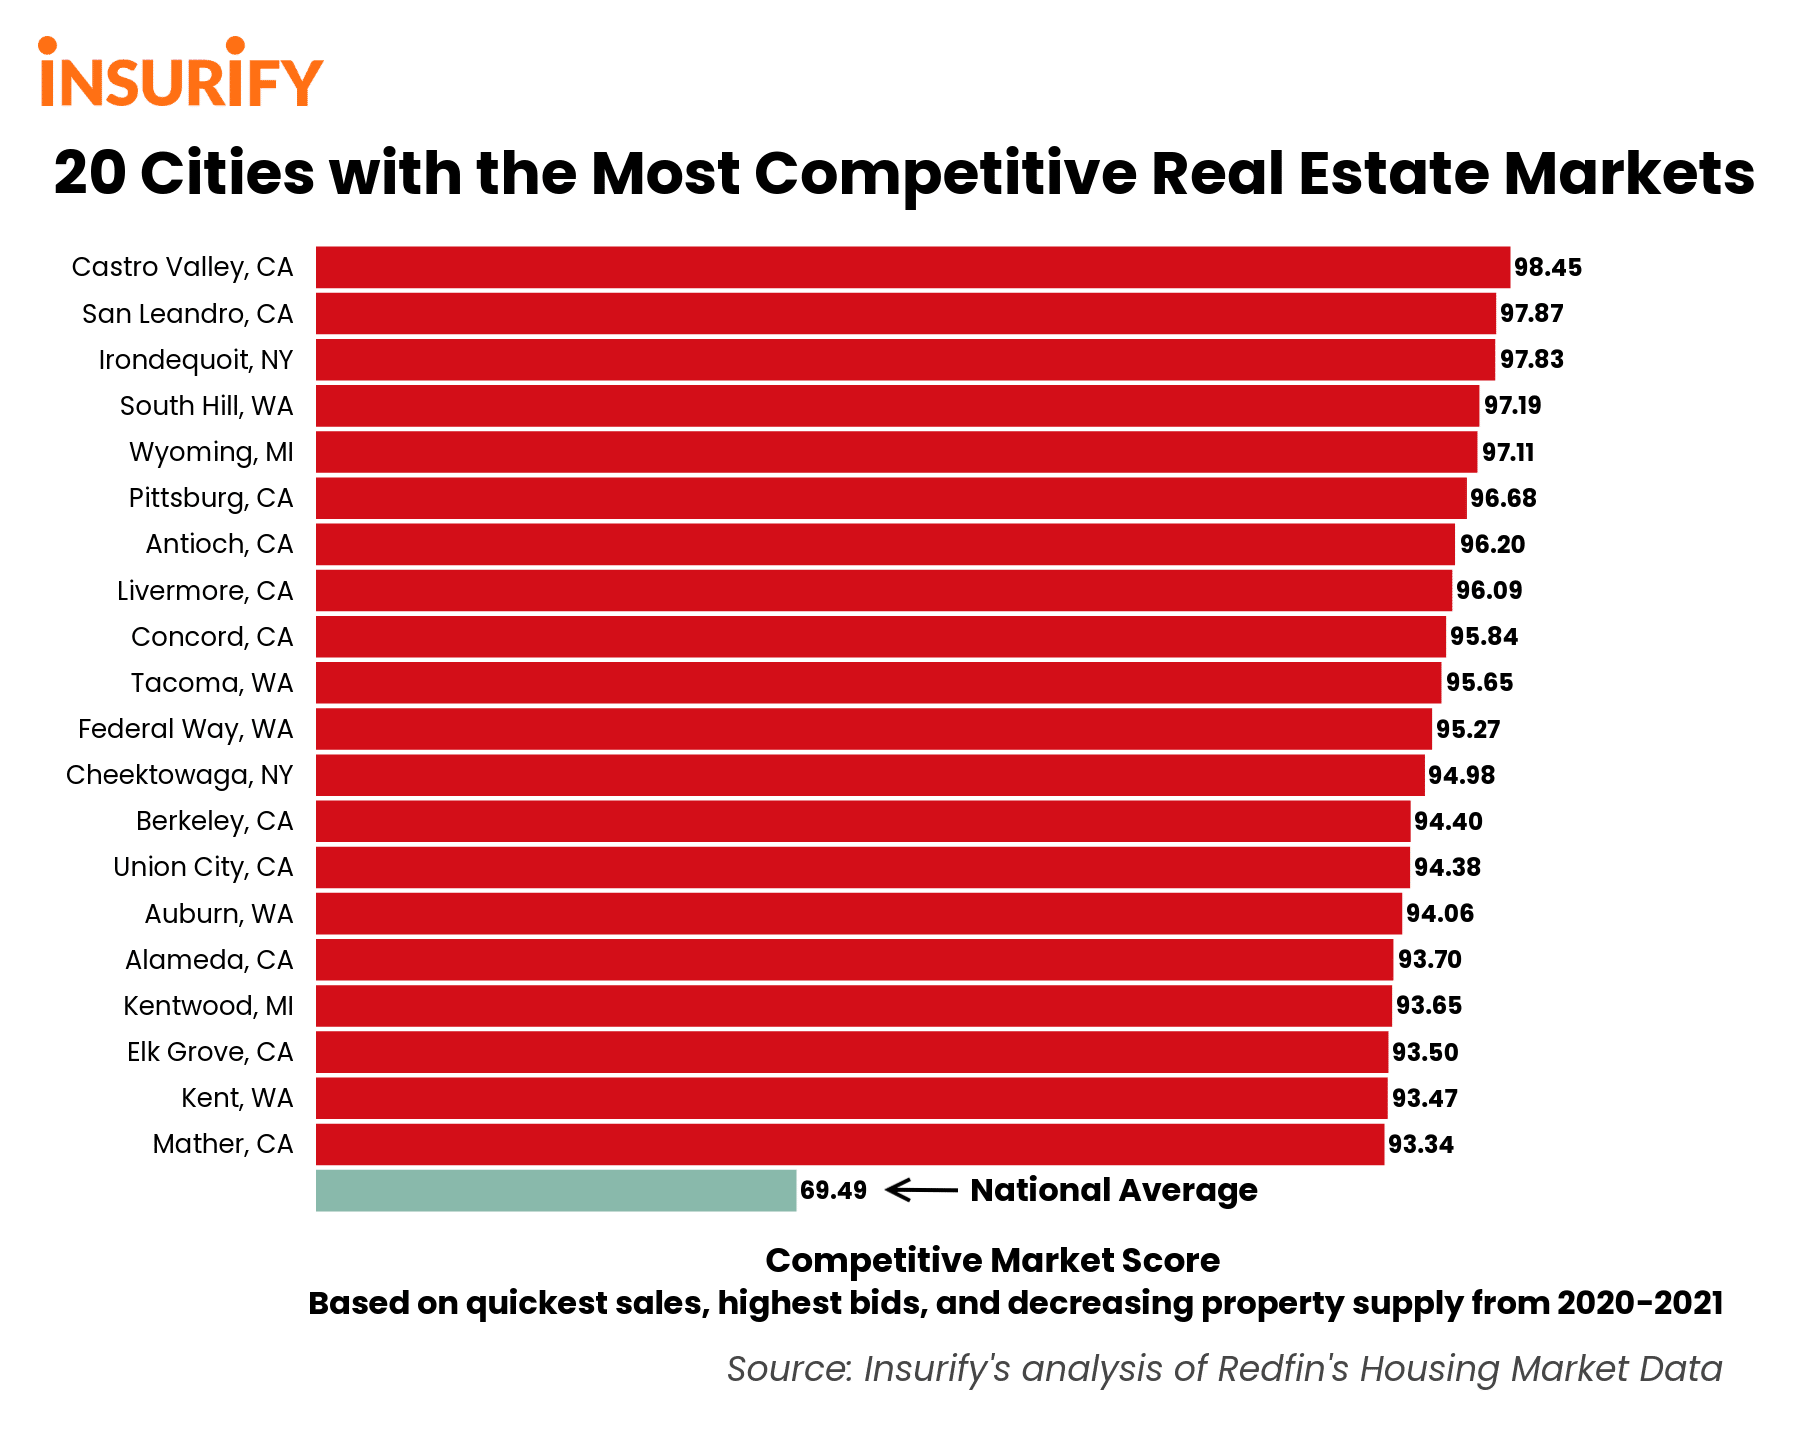 Bar graph showing the 20 most competitive real estate markets in 2021 compared to the national average.